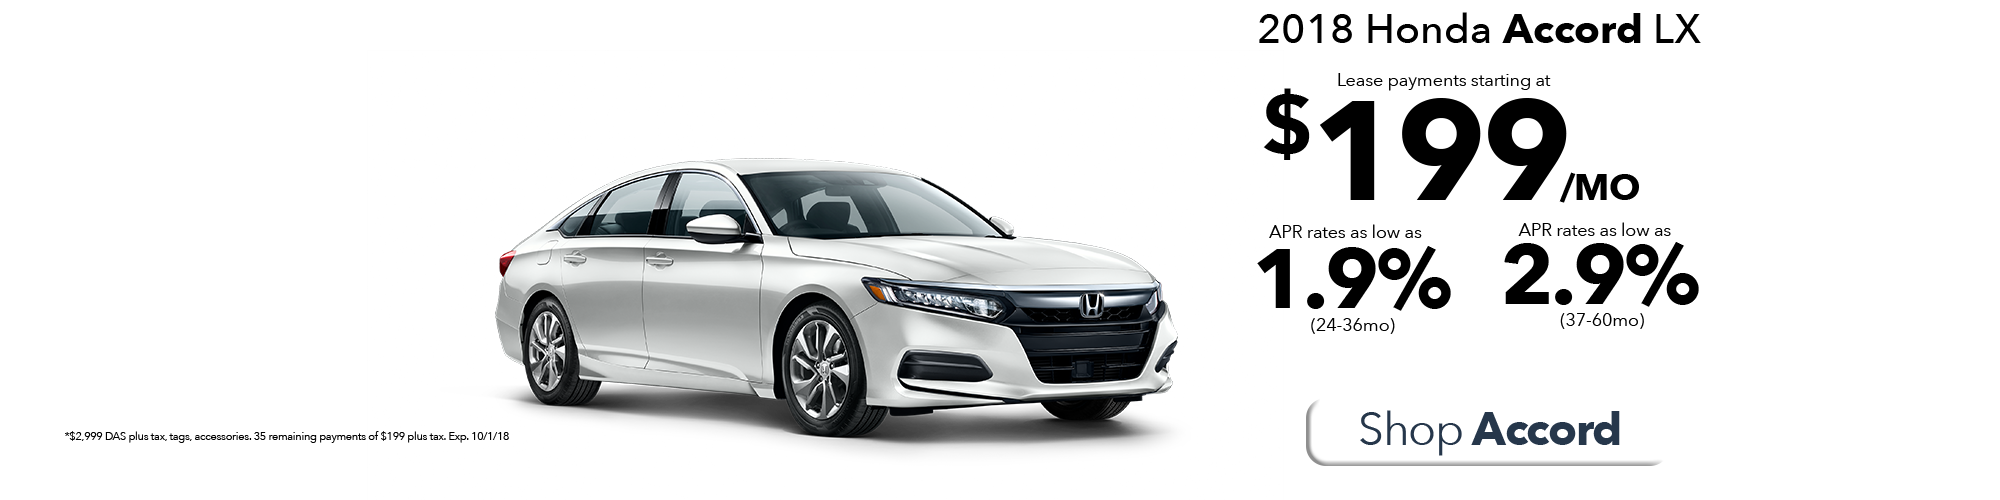 Amazing Donu0027t Worry Because The Committed Staff At Moon Township Honda, Your Honda  Pittsburgh Home, ...